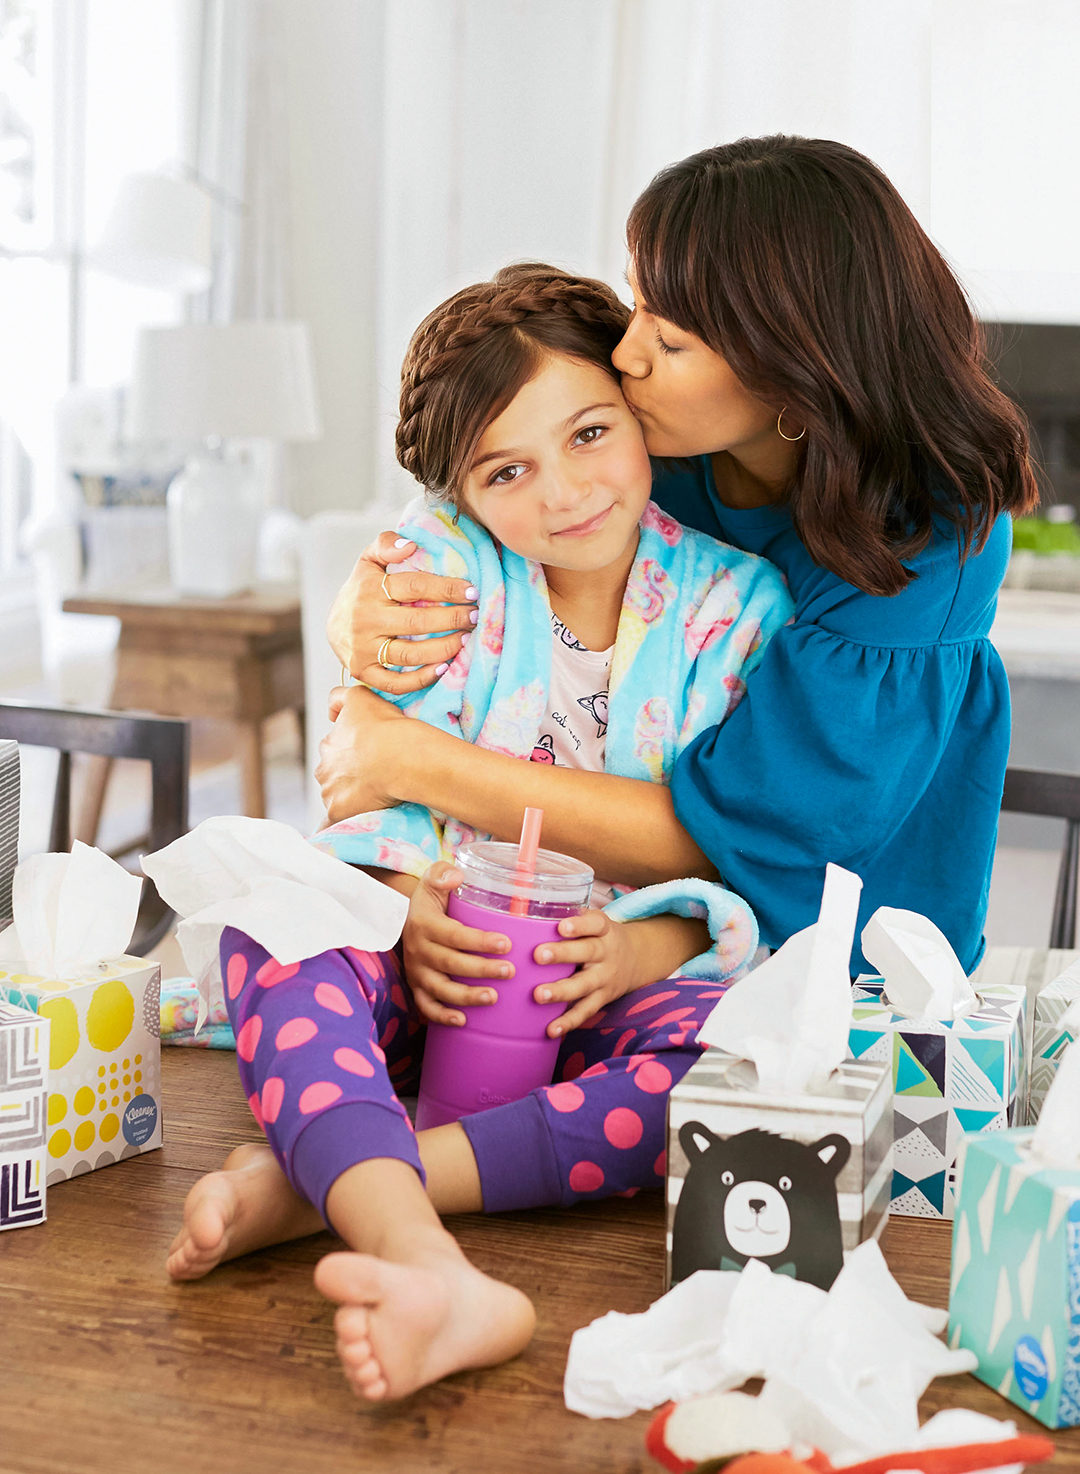 mom hugging daughter kitchen table with kleenex